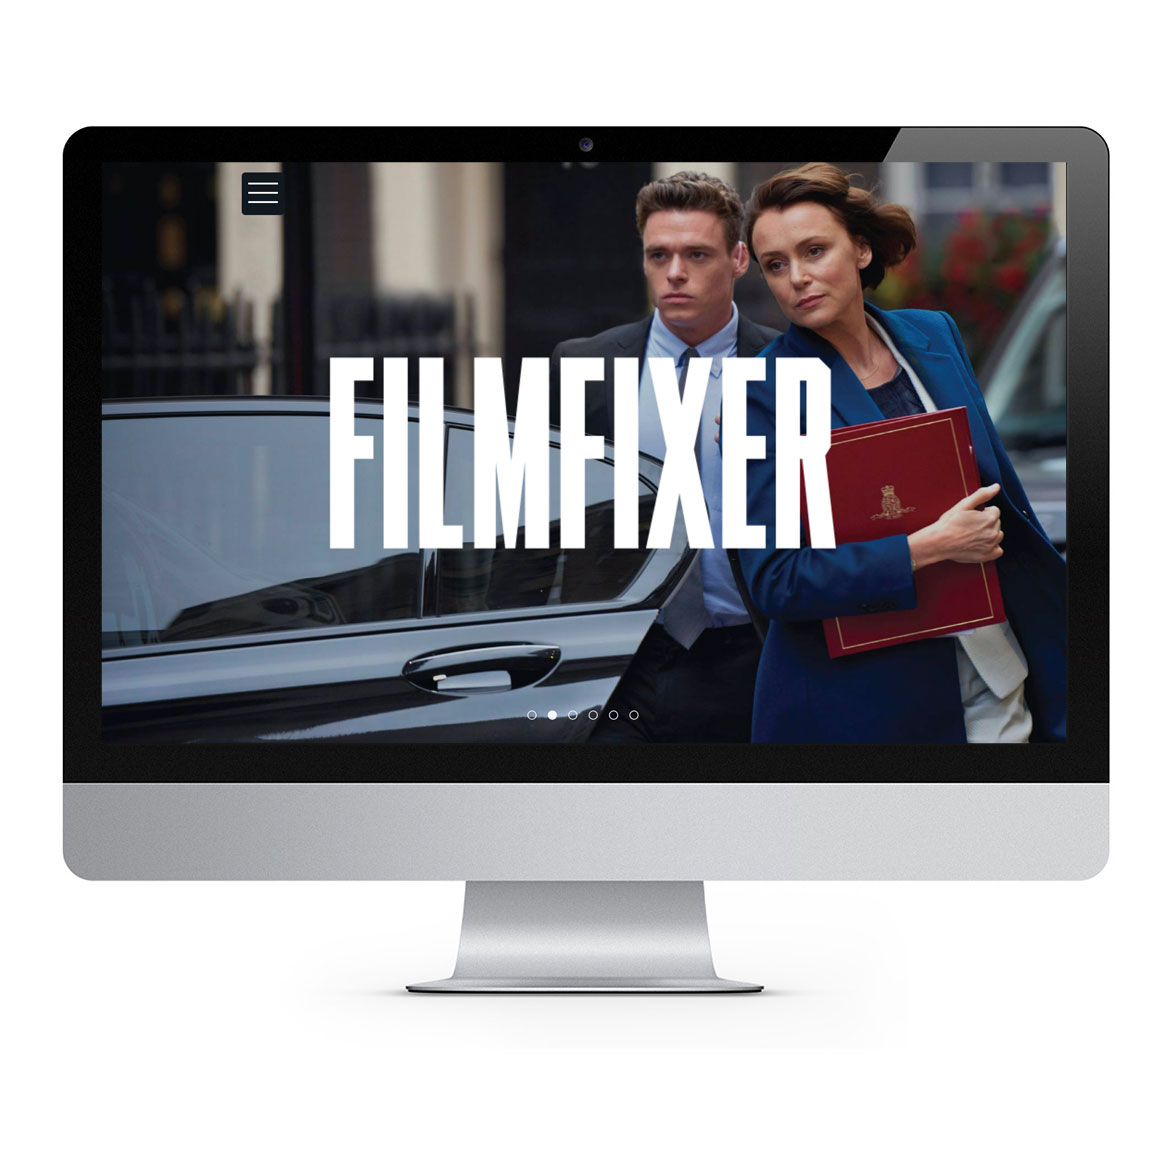 filmfixer_filmlocation_website.jpg